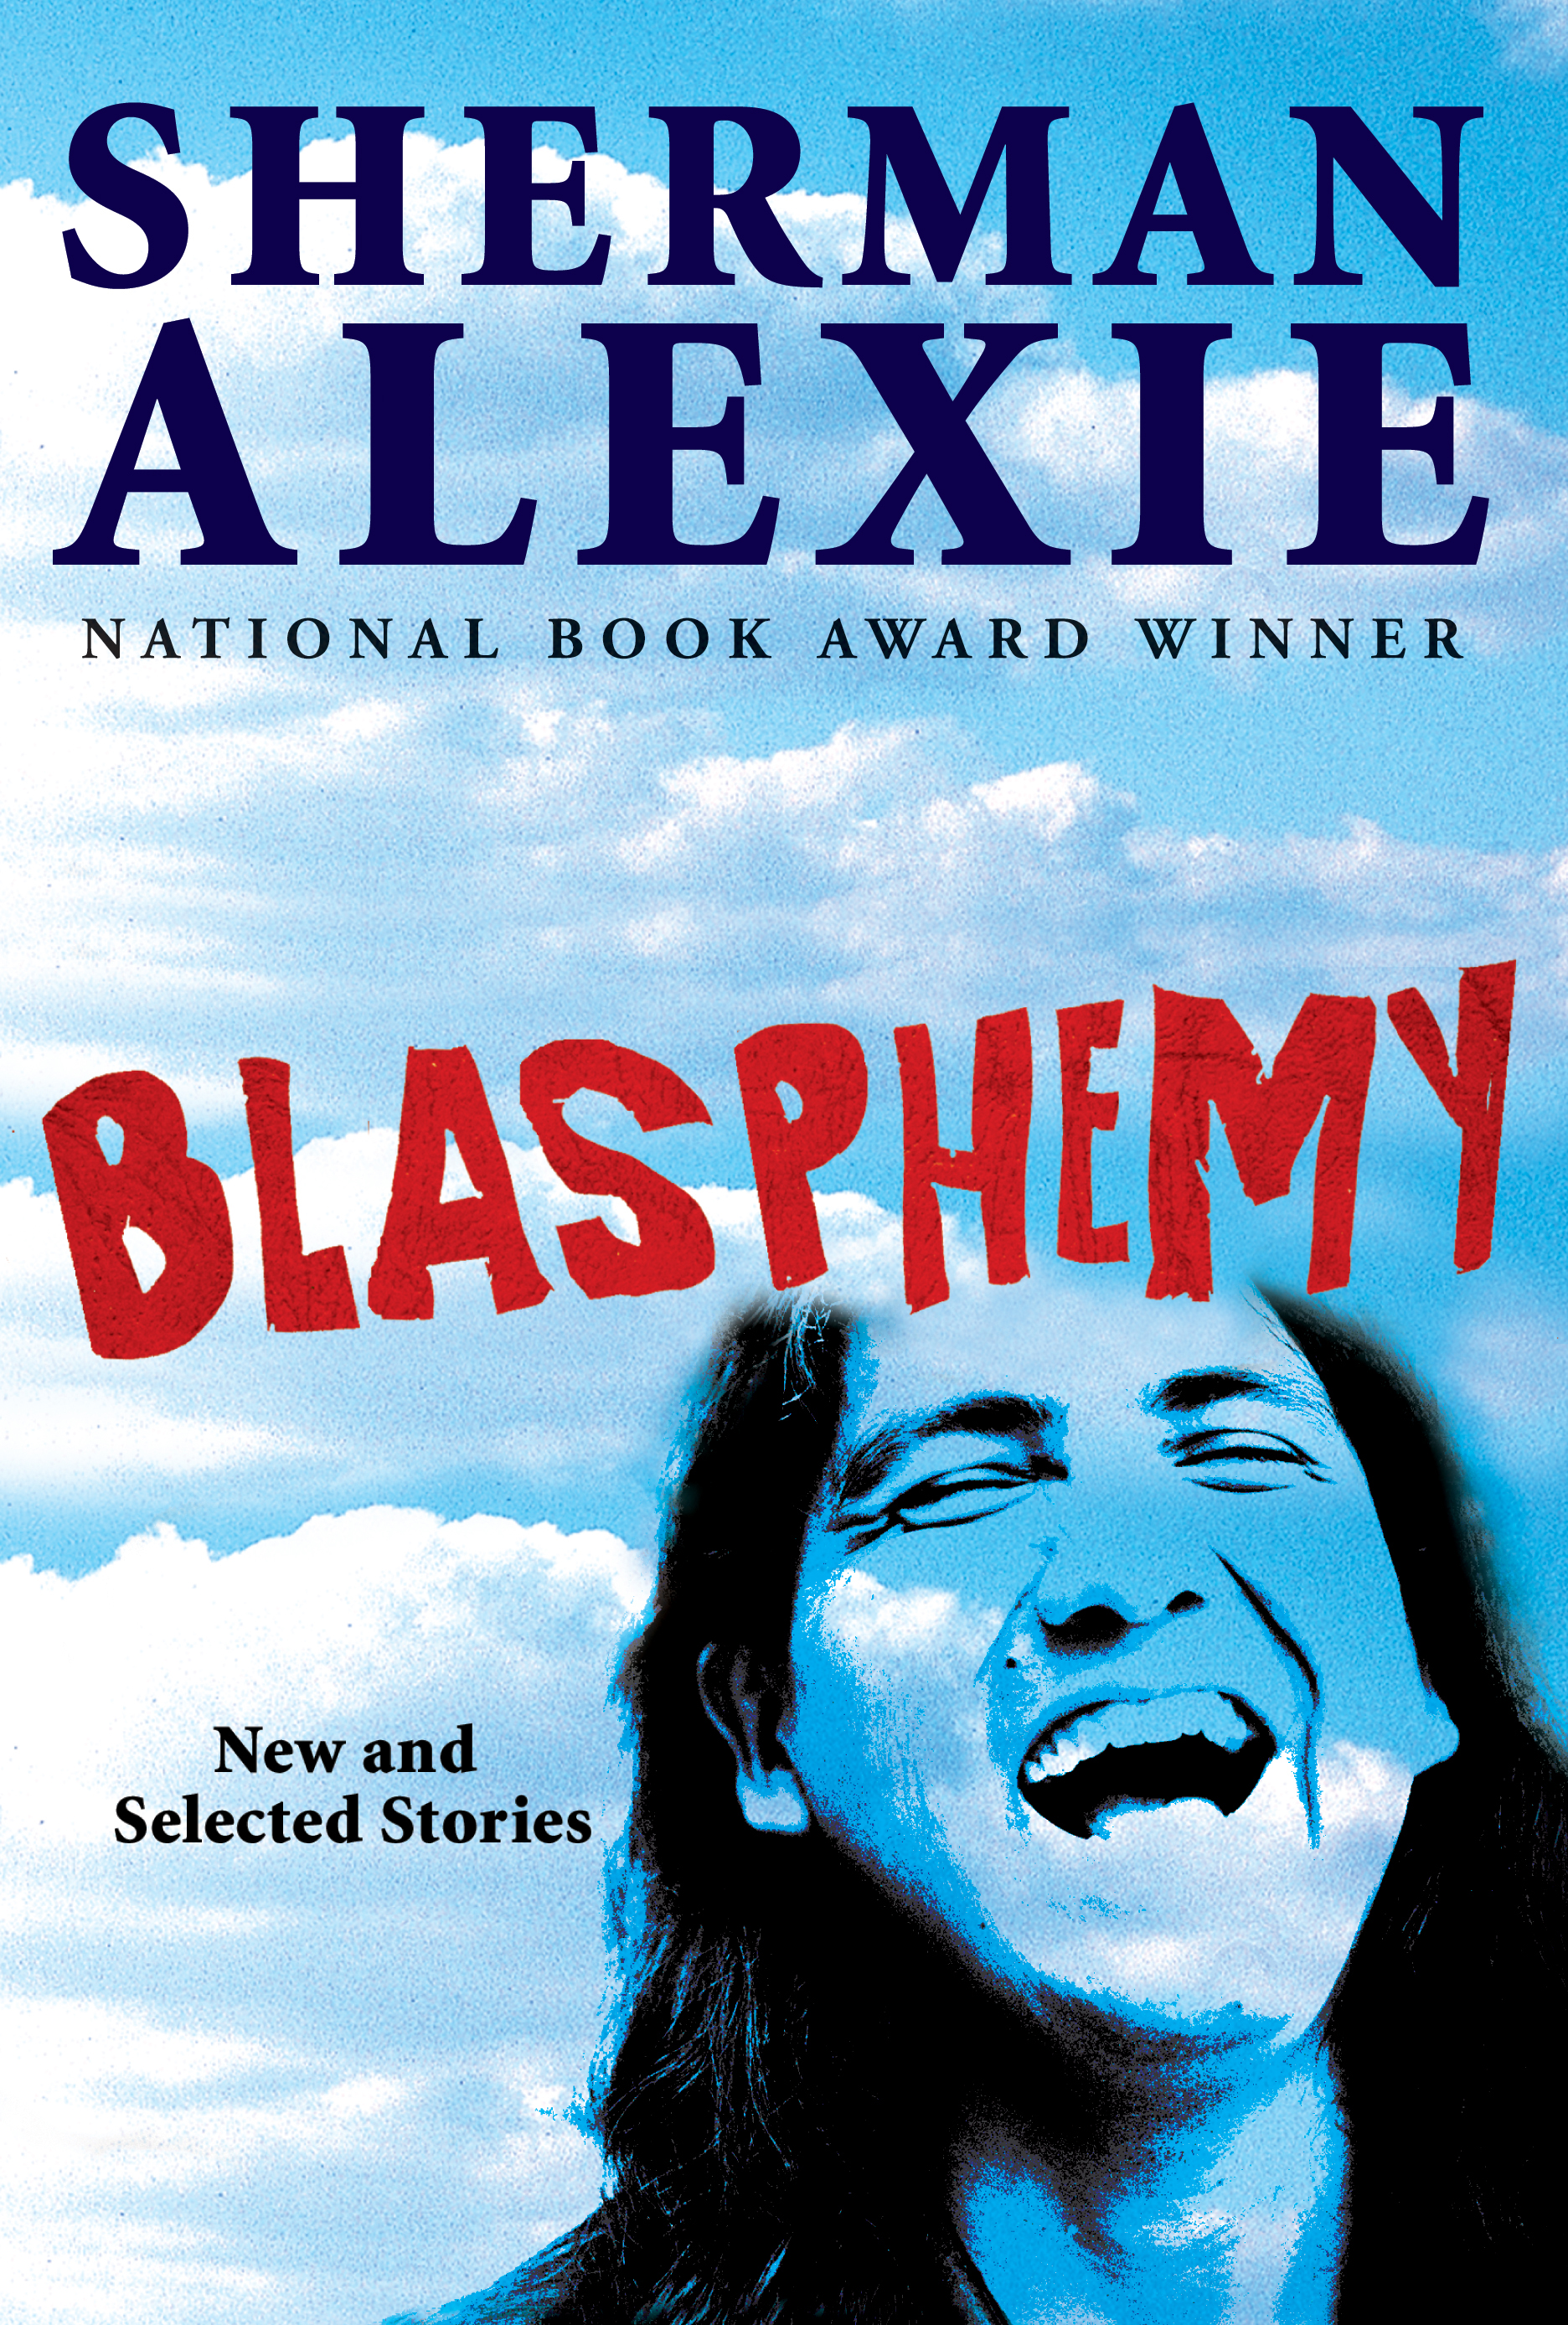 sherman alexie summary